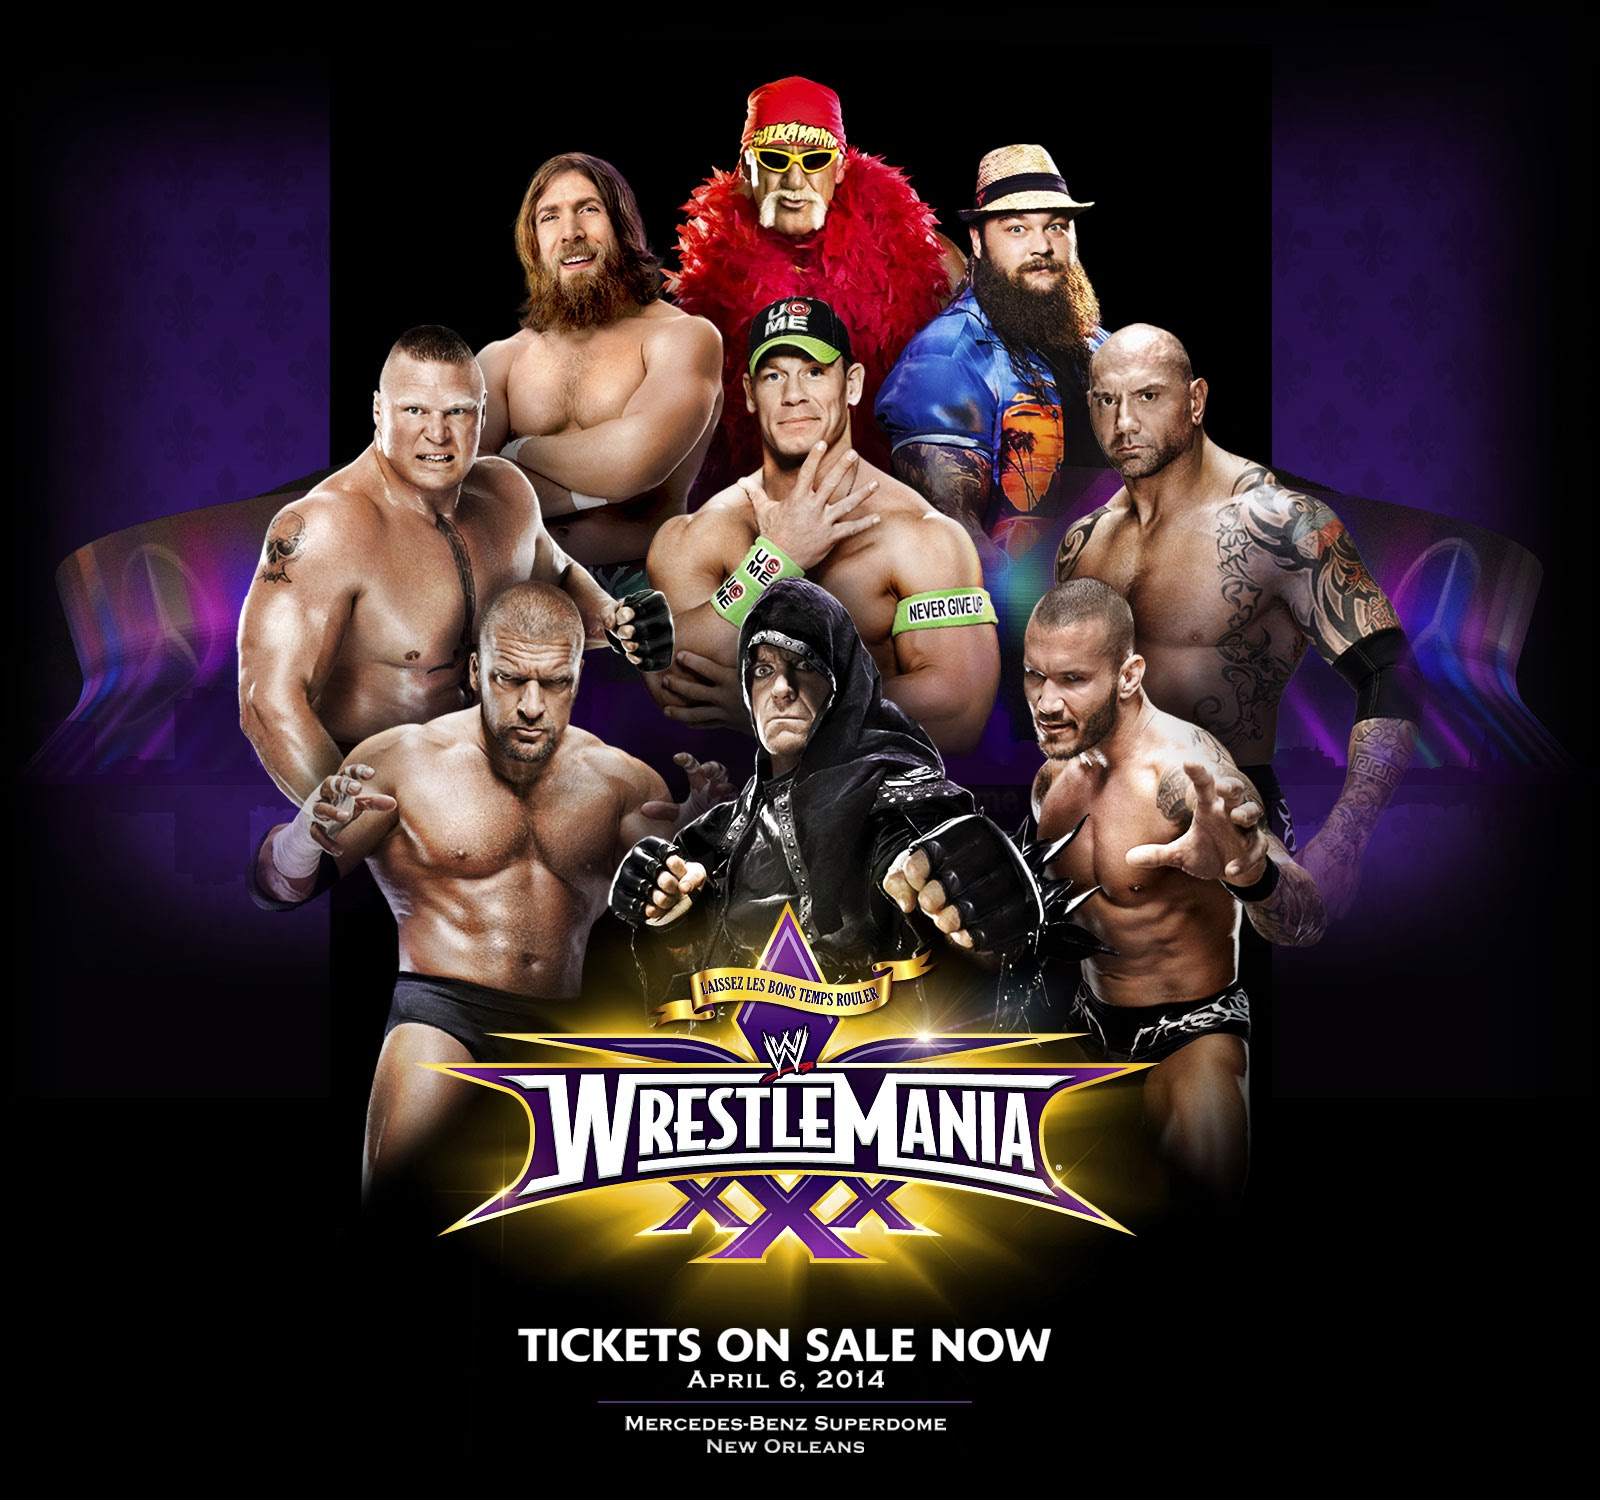 http://www.nolawrestlemania.com/wp-content/themes/wrestlemaniaxxx/images/background_home.jpg